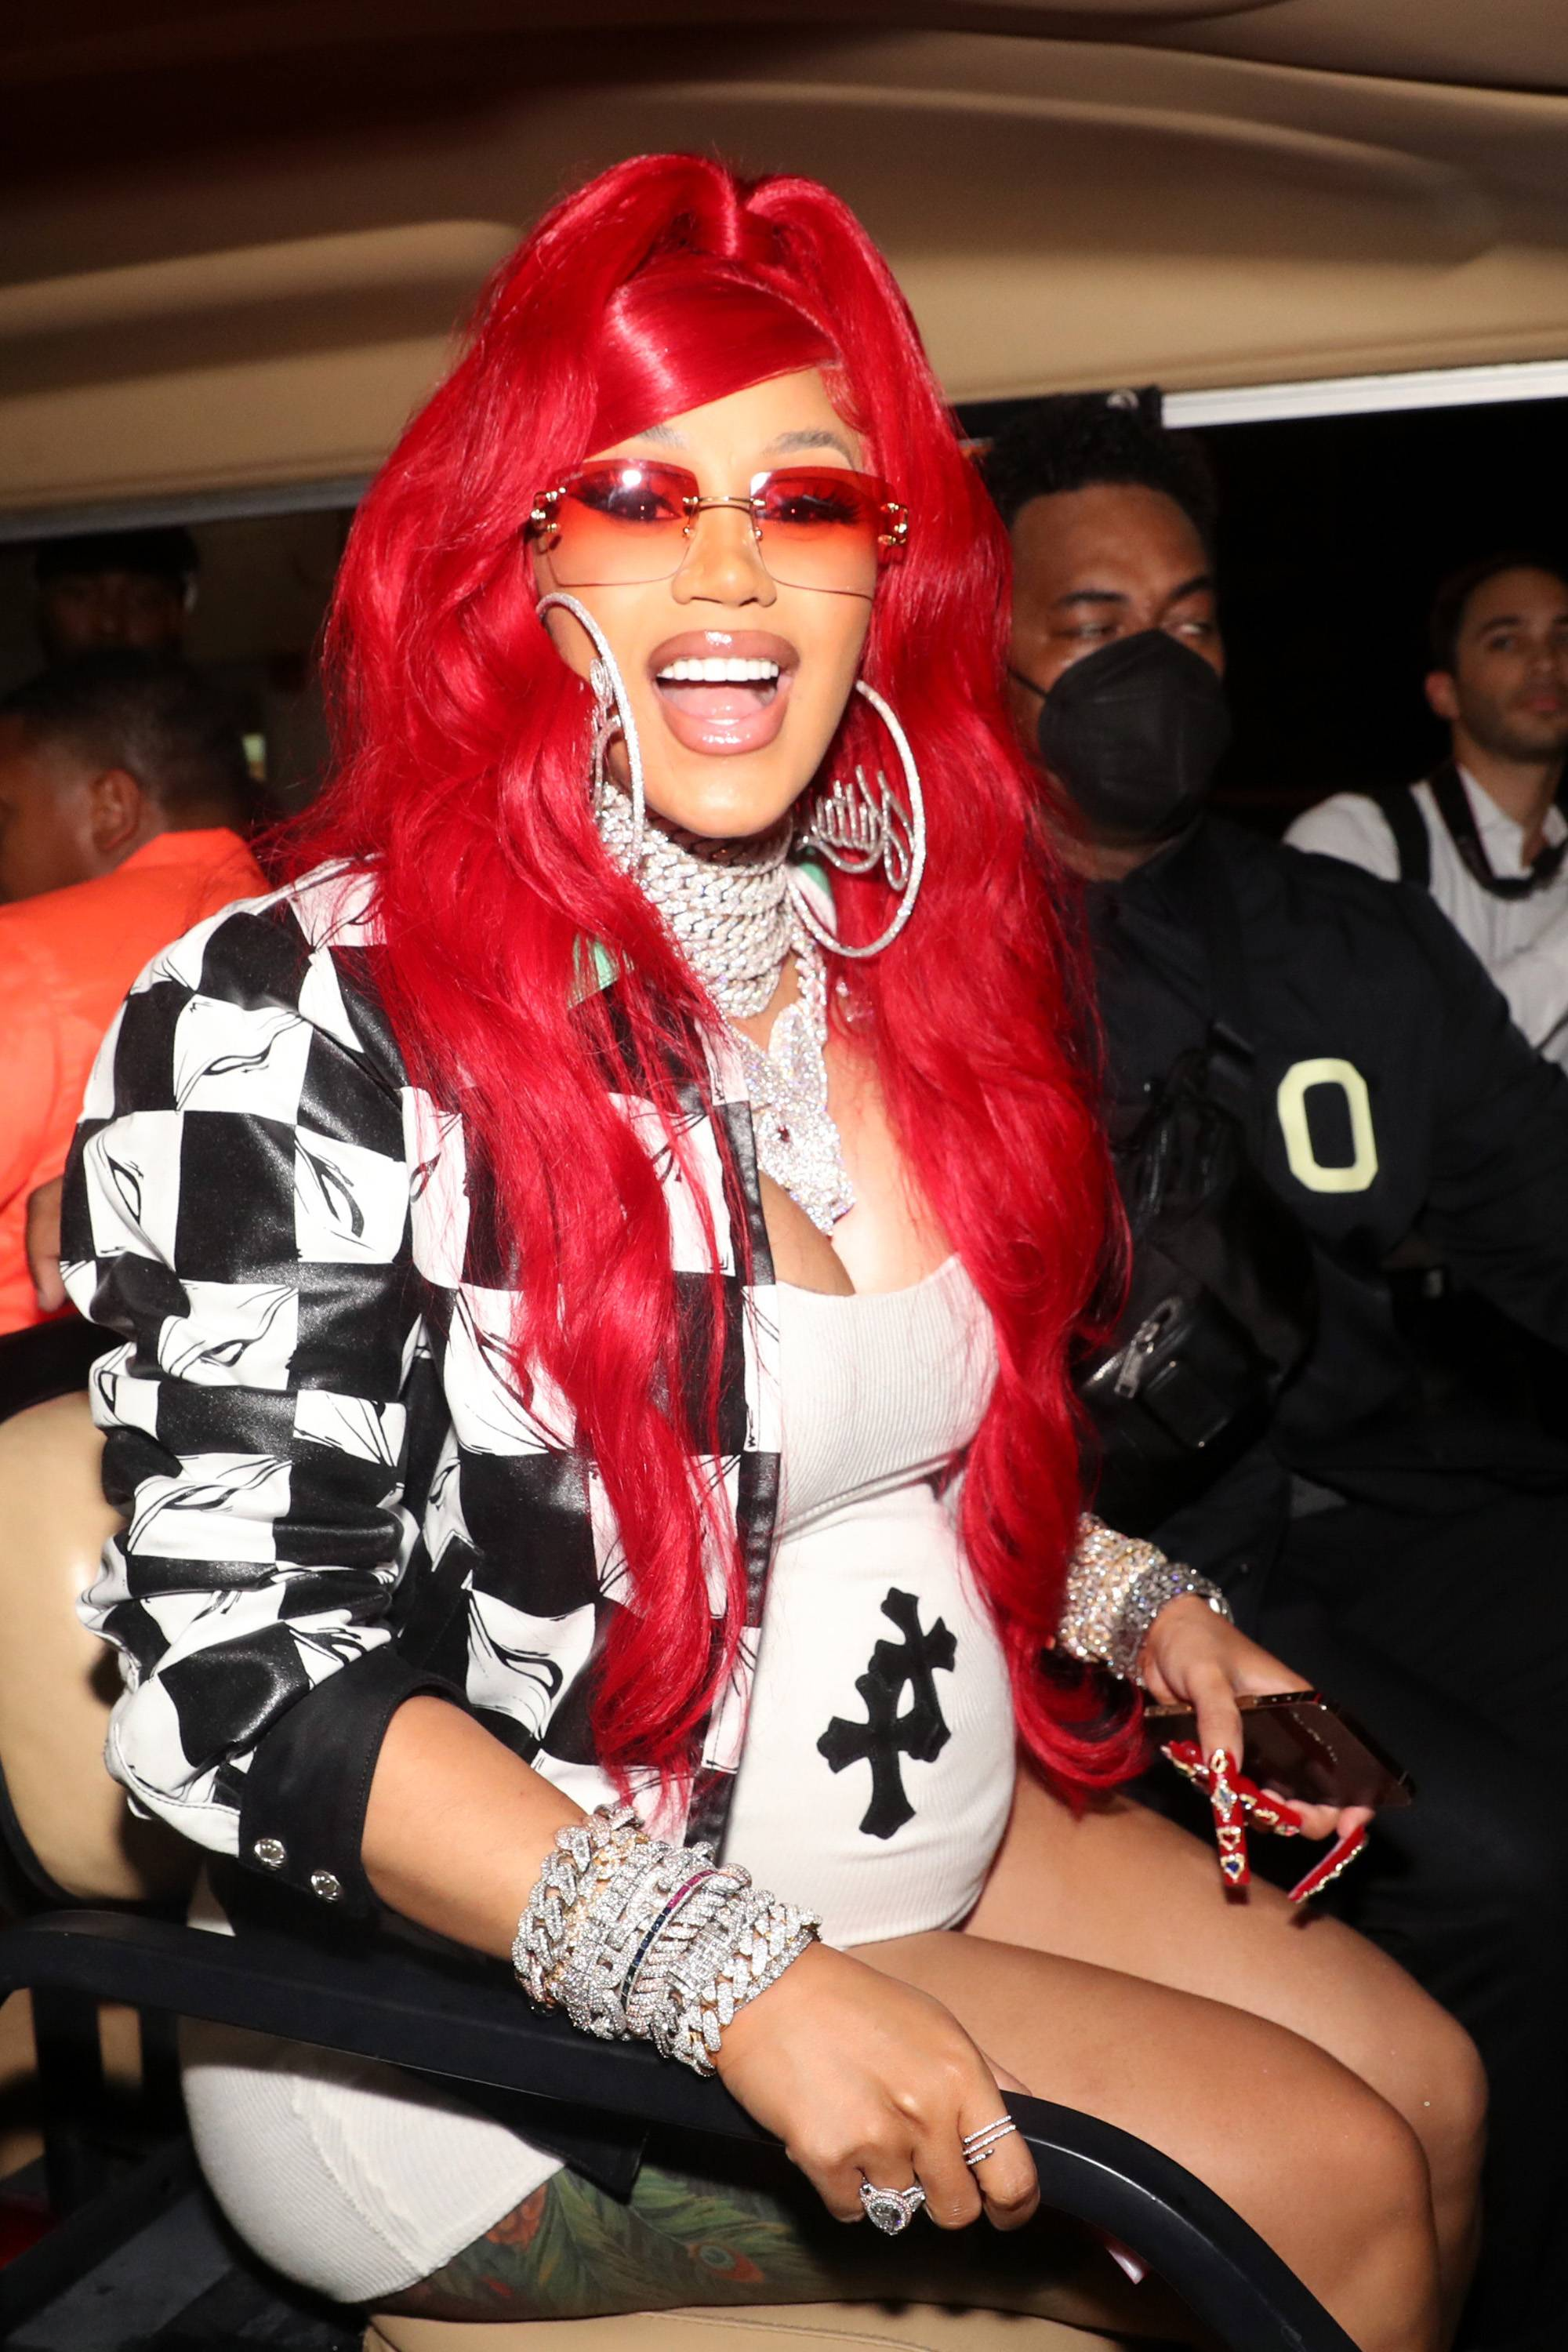 Hot 97's Summer Jam 2021 - Cardi Bshowed off her growing baby bump while performing with her husbandOffsetand rap groupMigosat Hot 97's Summer Jam 2021. Behind the scenes, the pregnant rapper snapped this photo rocking a short T-shirt dress with a black-and-white checkered bomber jacket. The Bronx native completed her look with bright red hair and layers of diamond bling.This makes baby no. 2 for Cardi and Offset, who welcomed their daughterKulturein 2018.We can't wait to see how the lovebirds celebrate their new addition. We also can't wait for more music and style from Cardi this year.(Photo by Johnny Nunez/WireImage) (Photo by Johnny Nunez/WireImage)